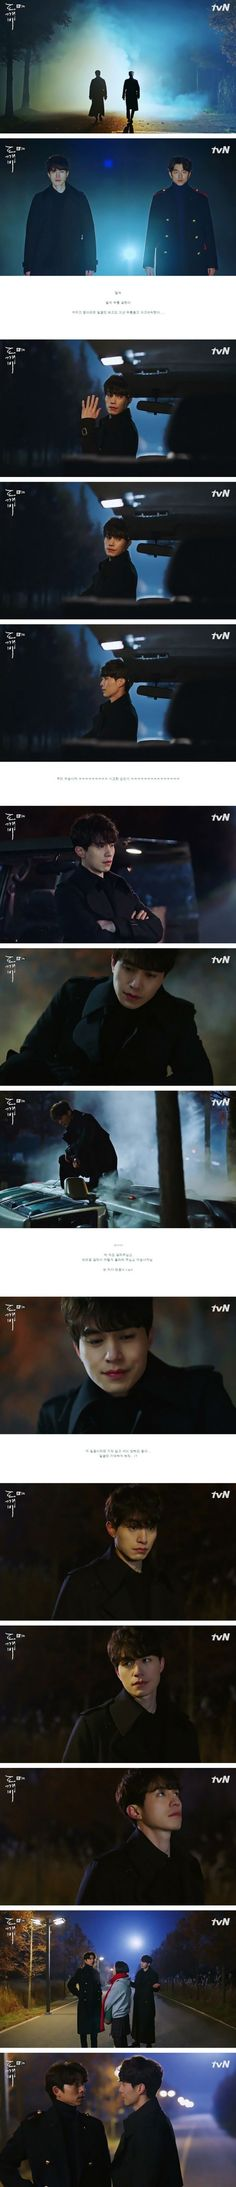 """[Spoiler] Added episodes 3 and 4 captures for the <a class=""""pintag"""" href=""""/explore/kdrama/"""" title=""""#kdrama explore Pinterest"""">#kdrama</a> 'Goblin'"""